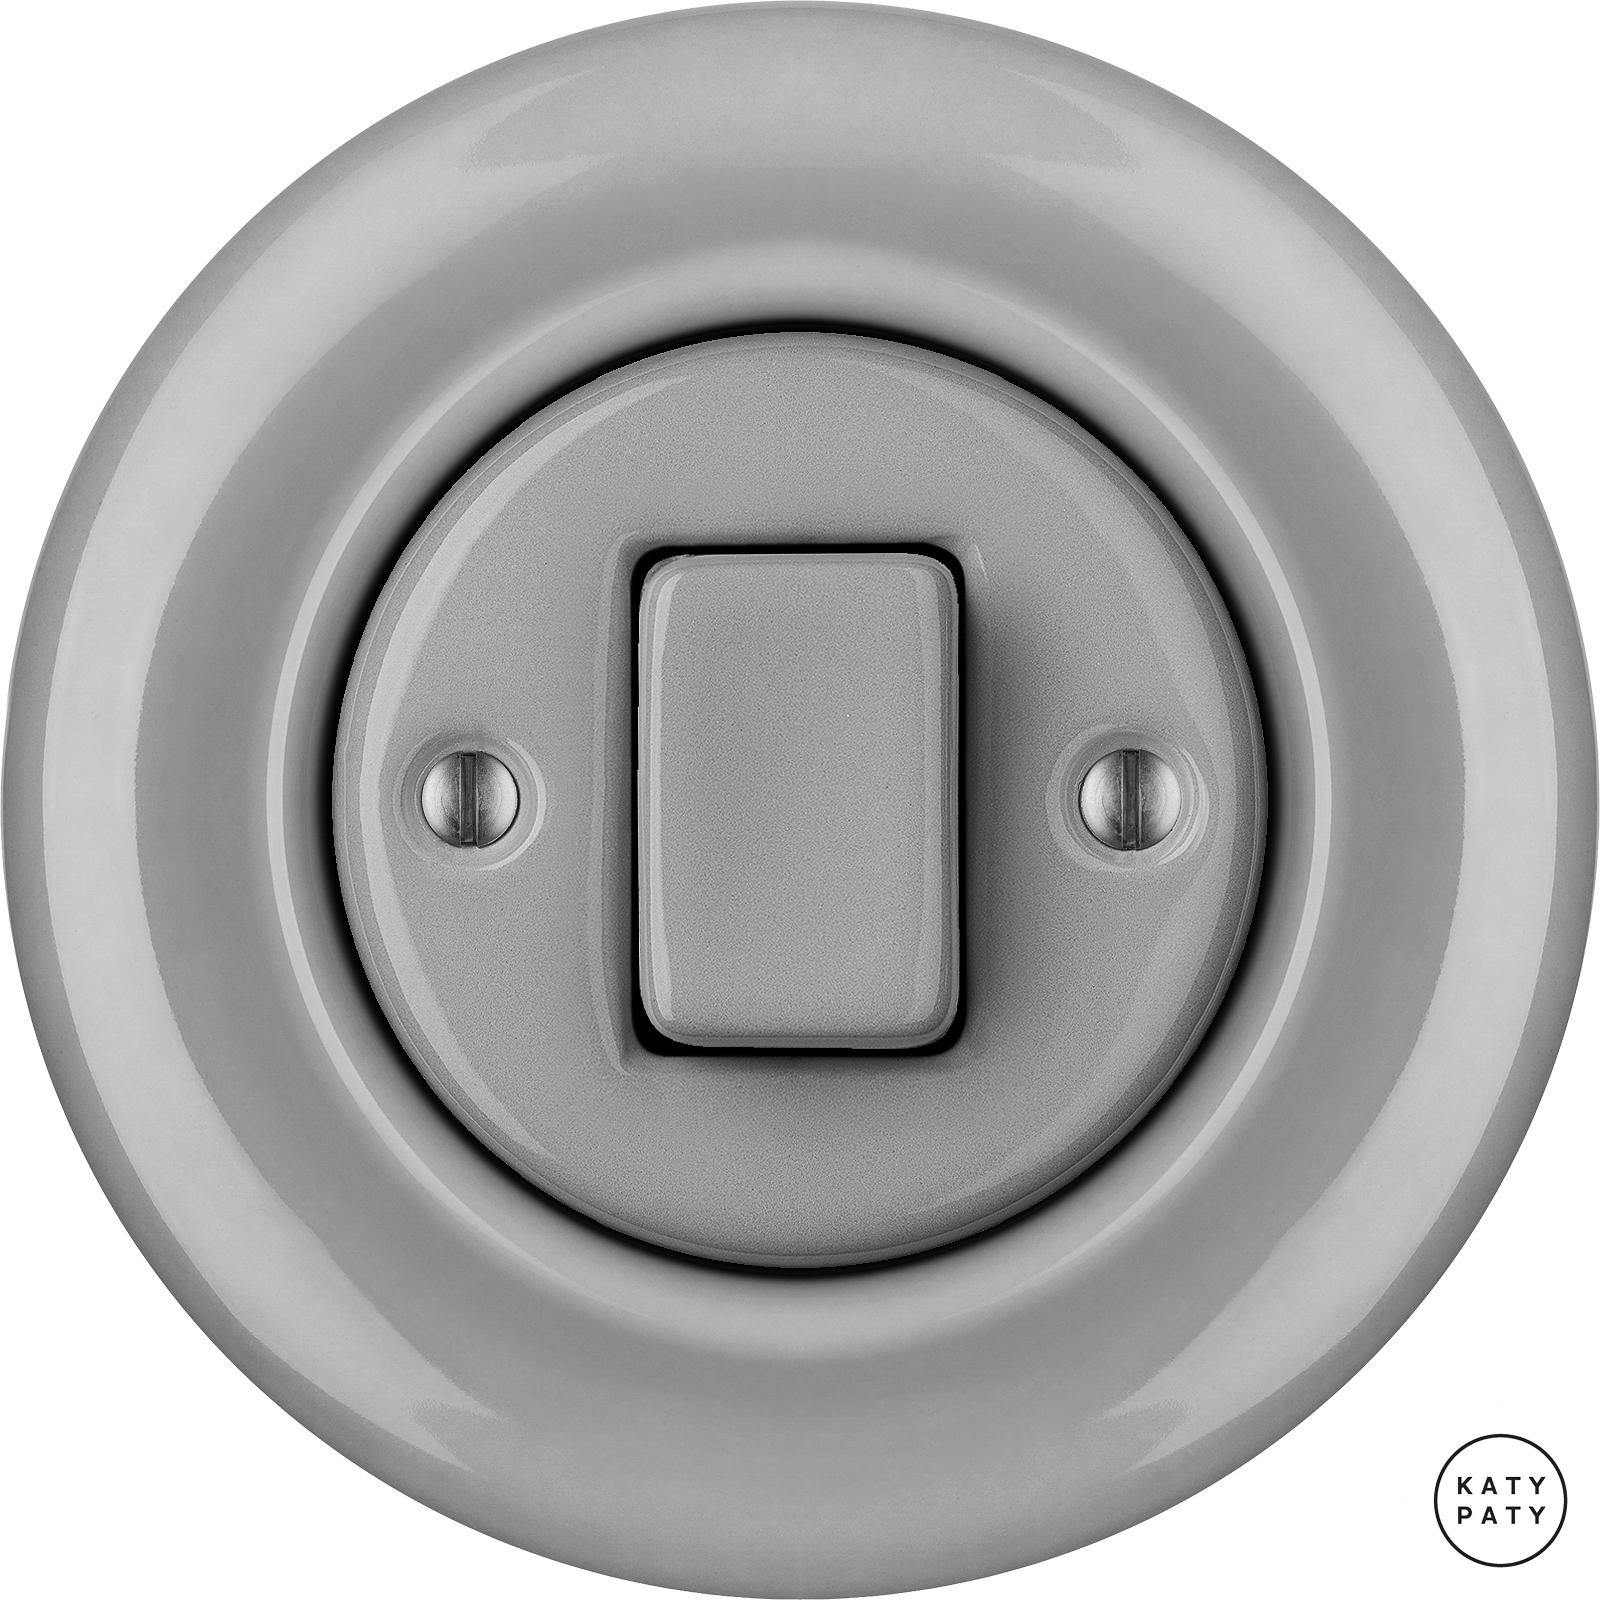 Porcelain switches - a 1 key - FAT ()  - CANA | Katy Paty